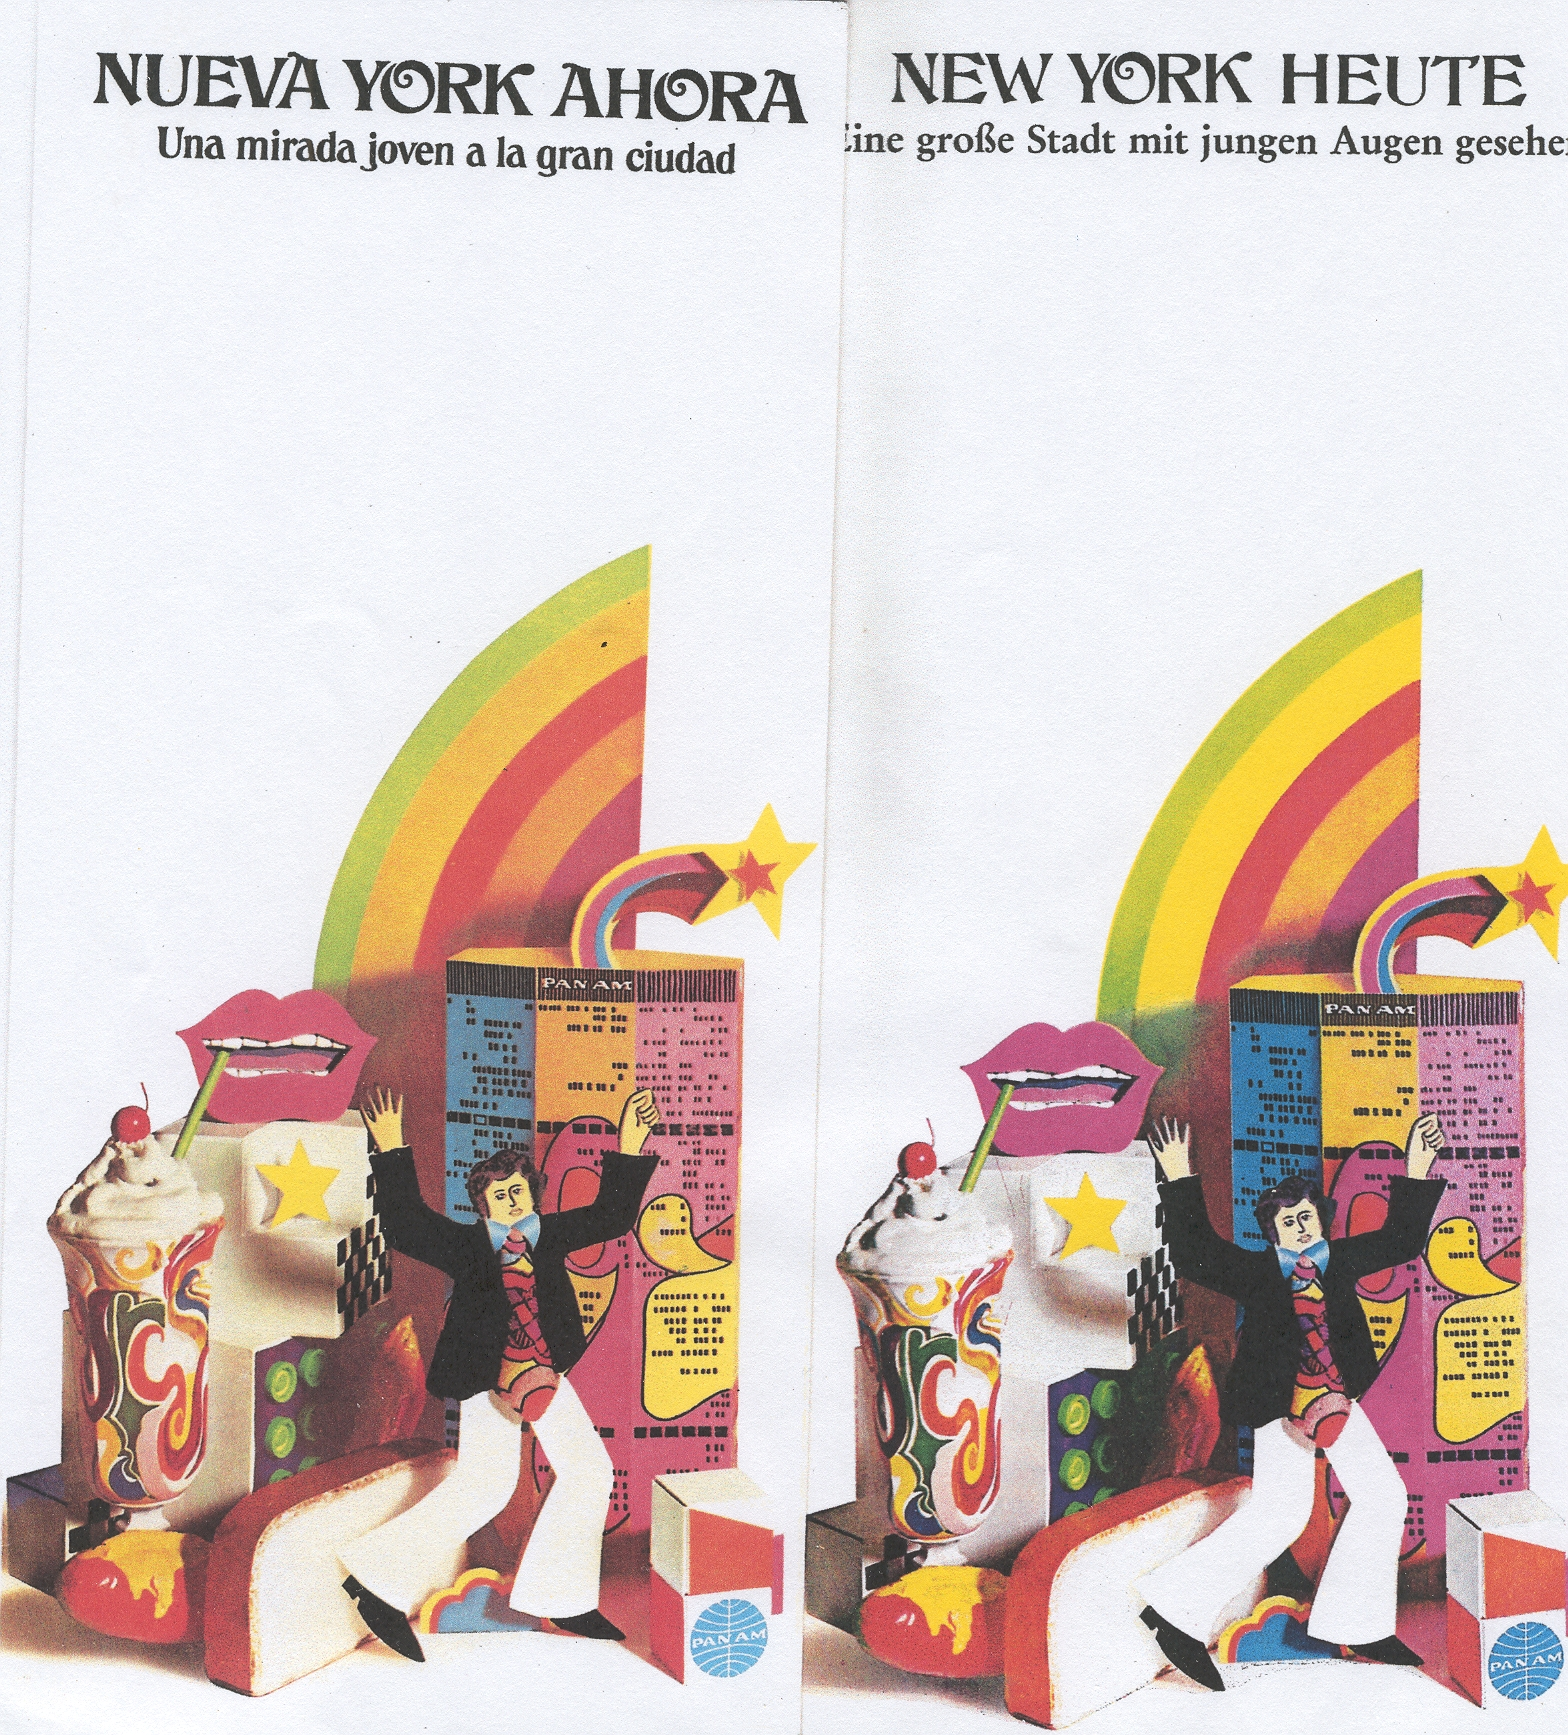 Sample brochure covers promoting New York in Spanish from the early 1970s